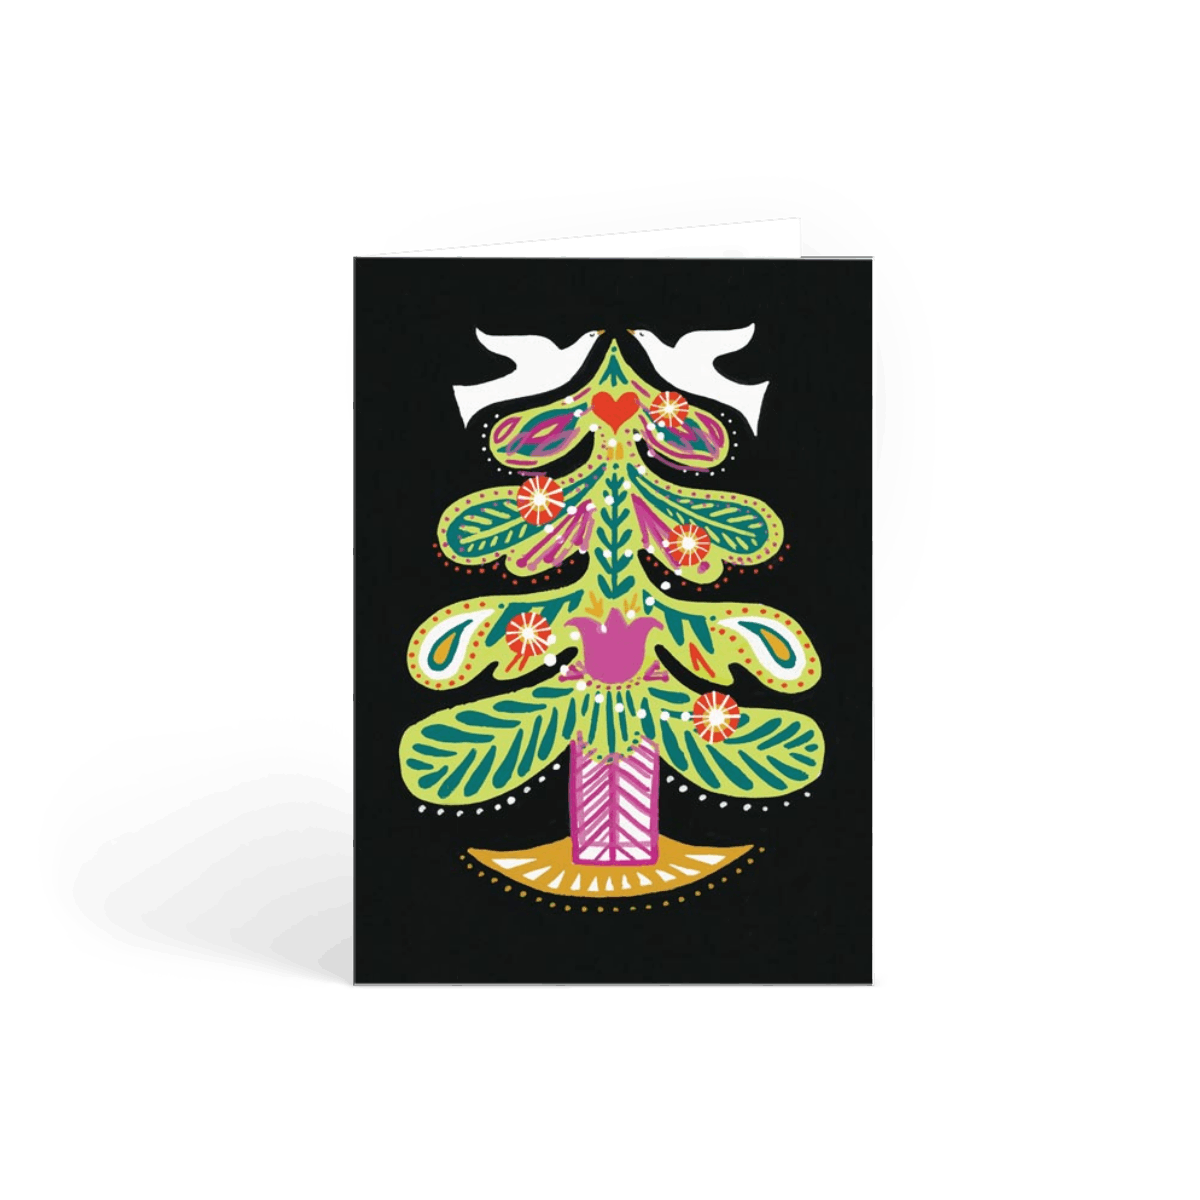 Https%3a%2f%2fwww.papier.com%2fproduct image%2f8191%2f2%2fscandi christmas tree 2029 front 1541431507.png?ixlib=rb 1.1